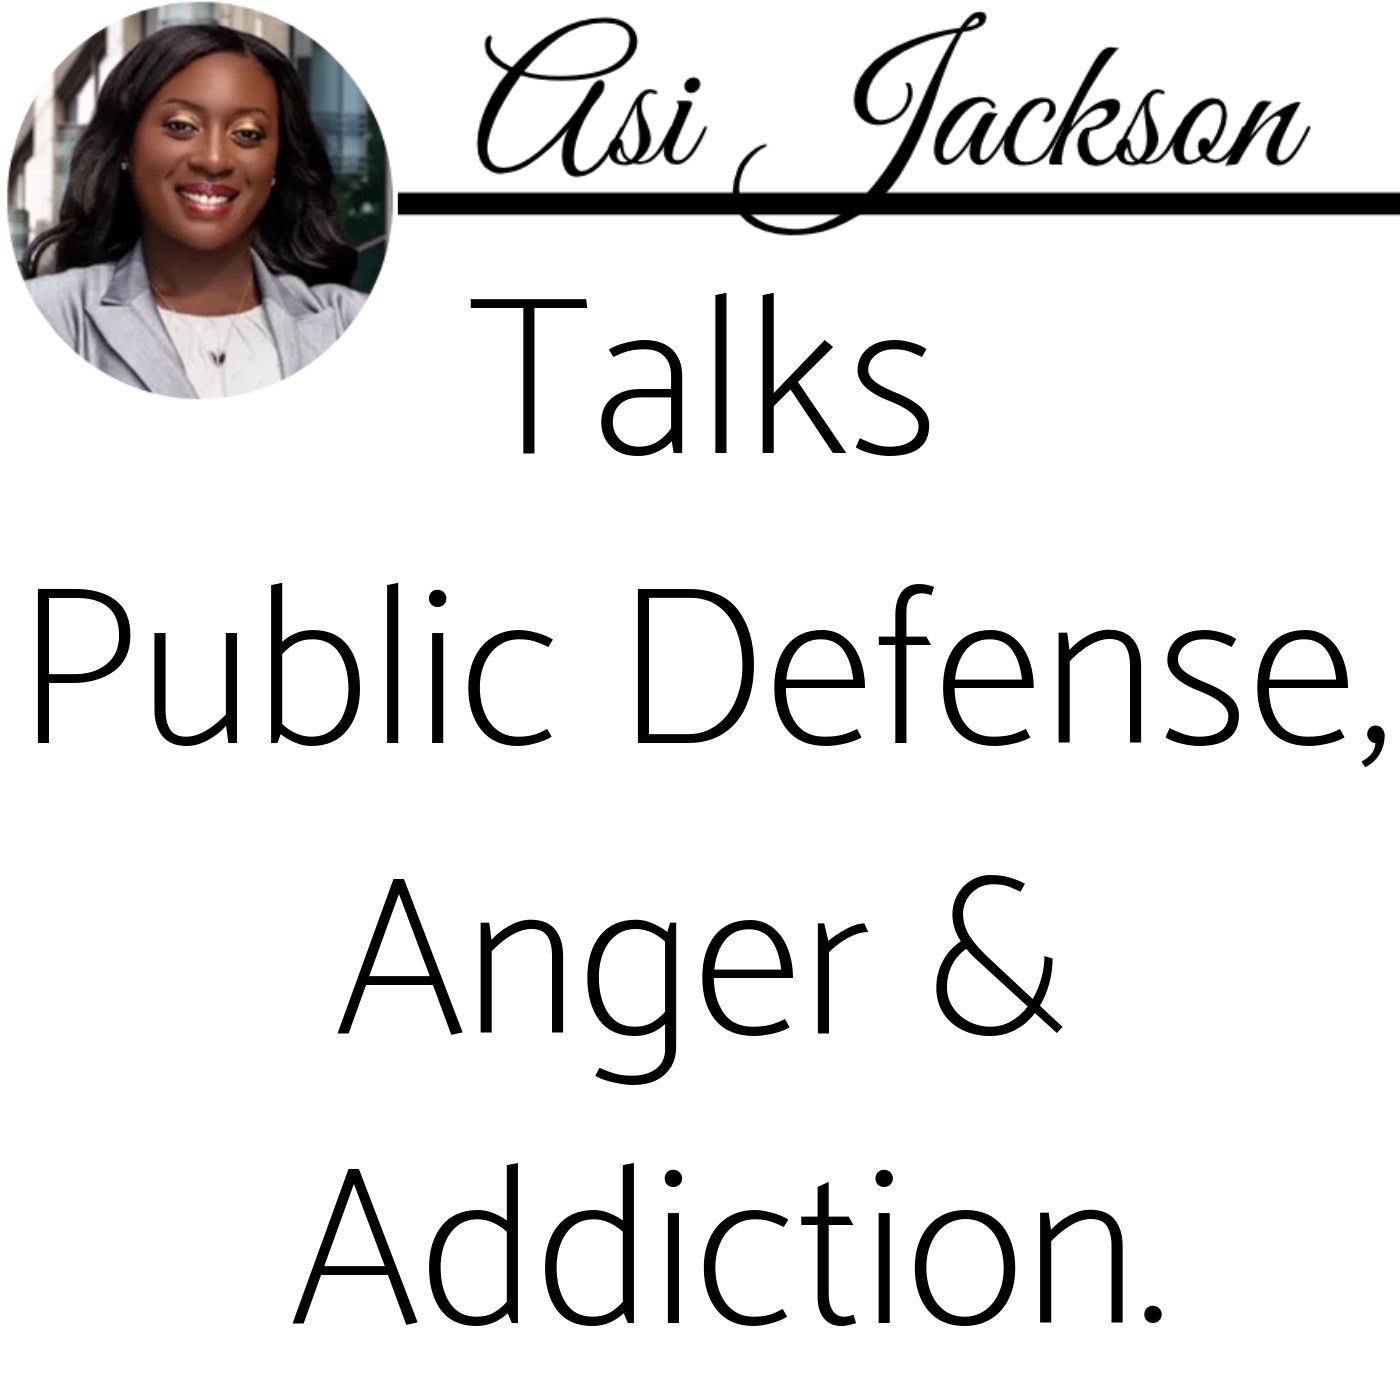 Episode 55: Part 2 of 3 - Asi Jackson Talks Public Defense, Anger & Addiction.